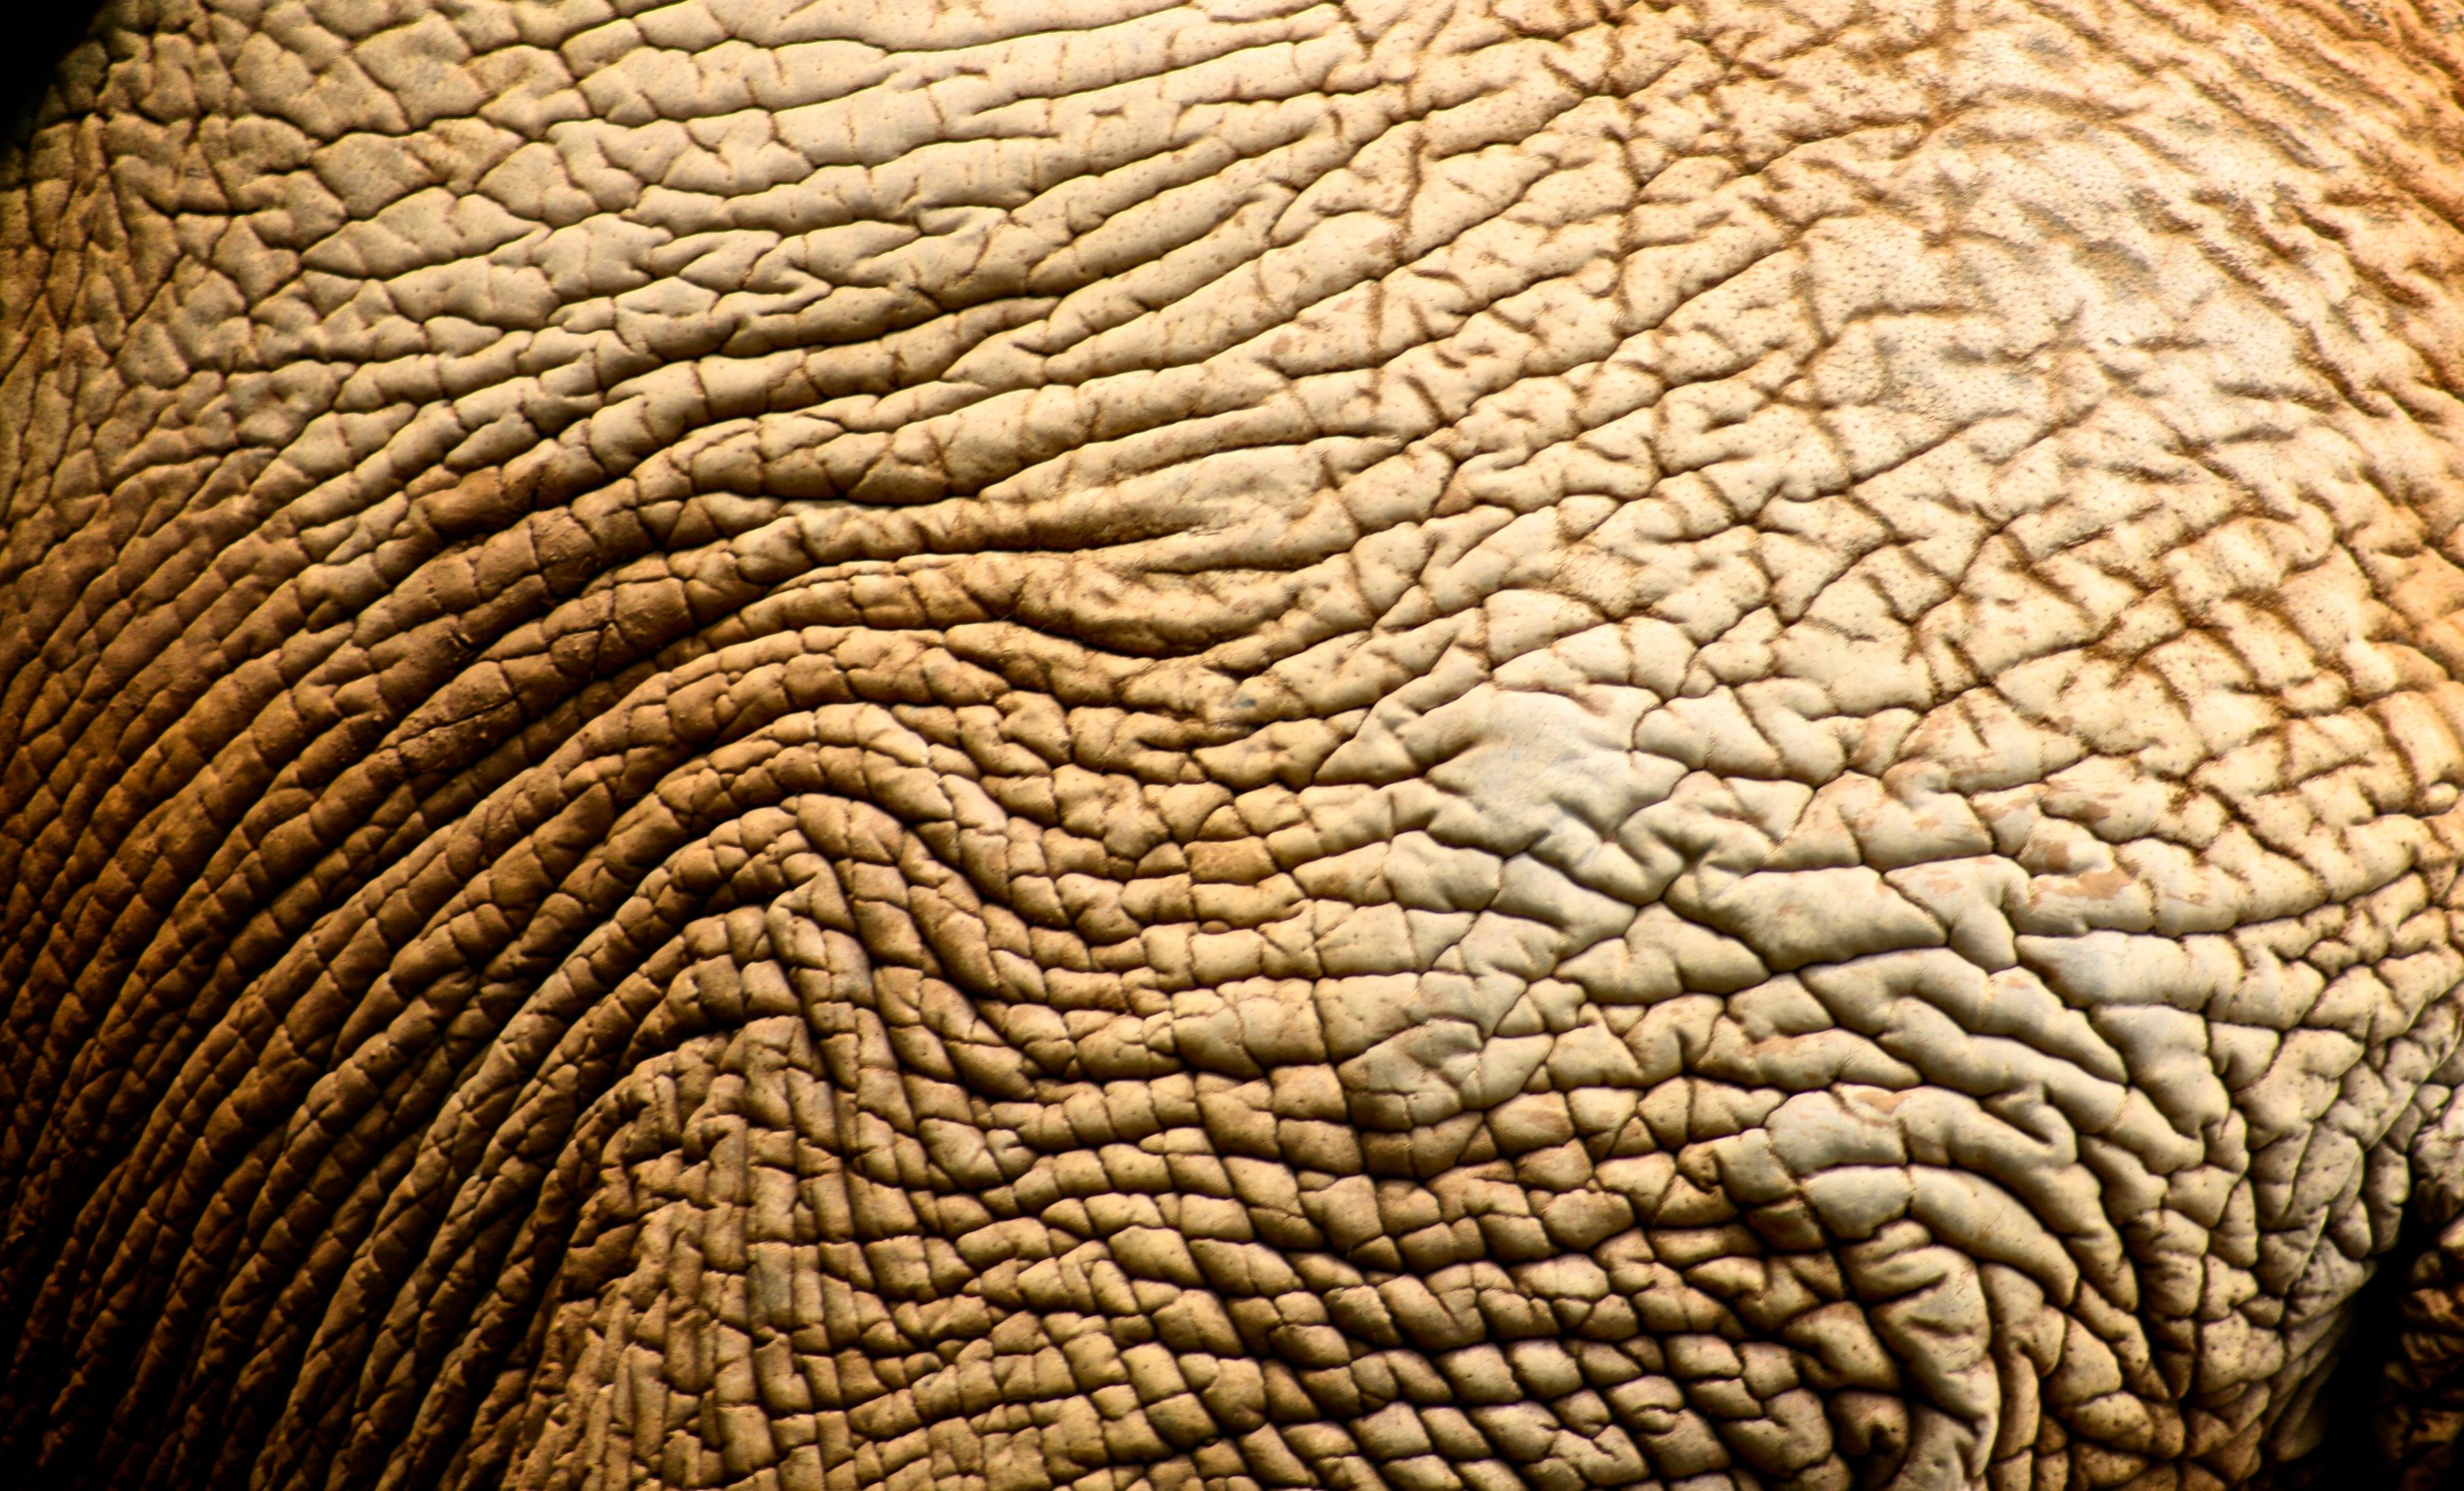 Wallpapers Backgrounds   Skin Texture Anderson Mancini Elephant Zoo SP 3607x2182